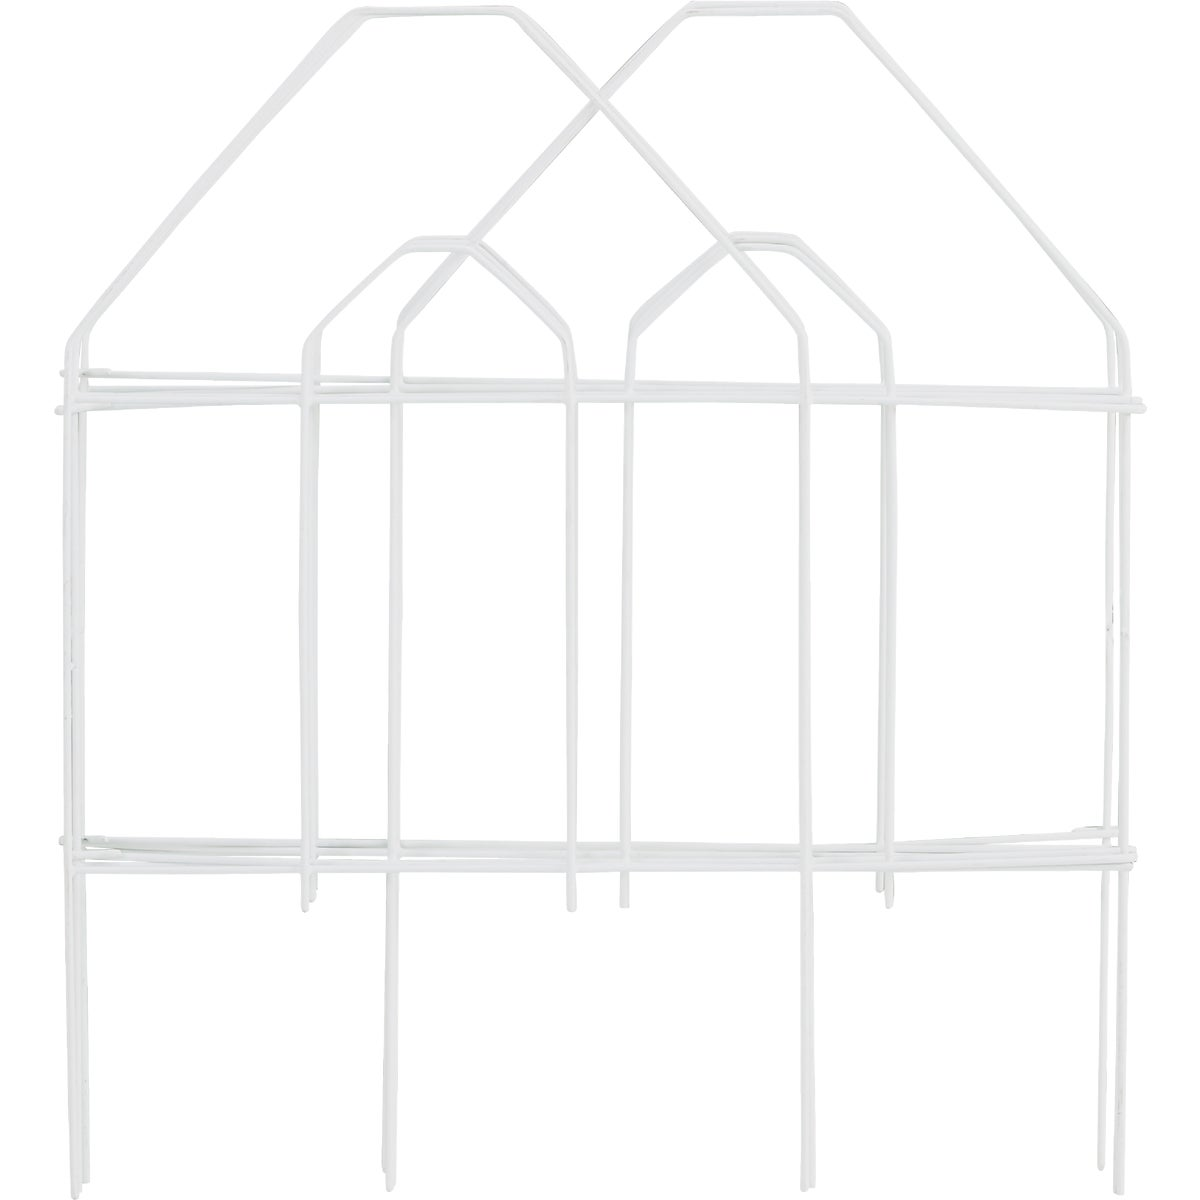 18X8 WHITE FOLDING FENCE - 718272 by Do it Best